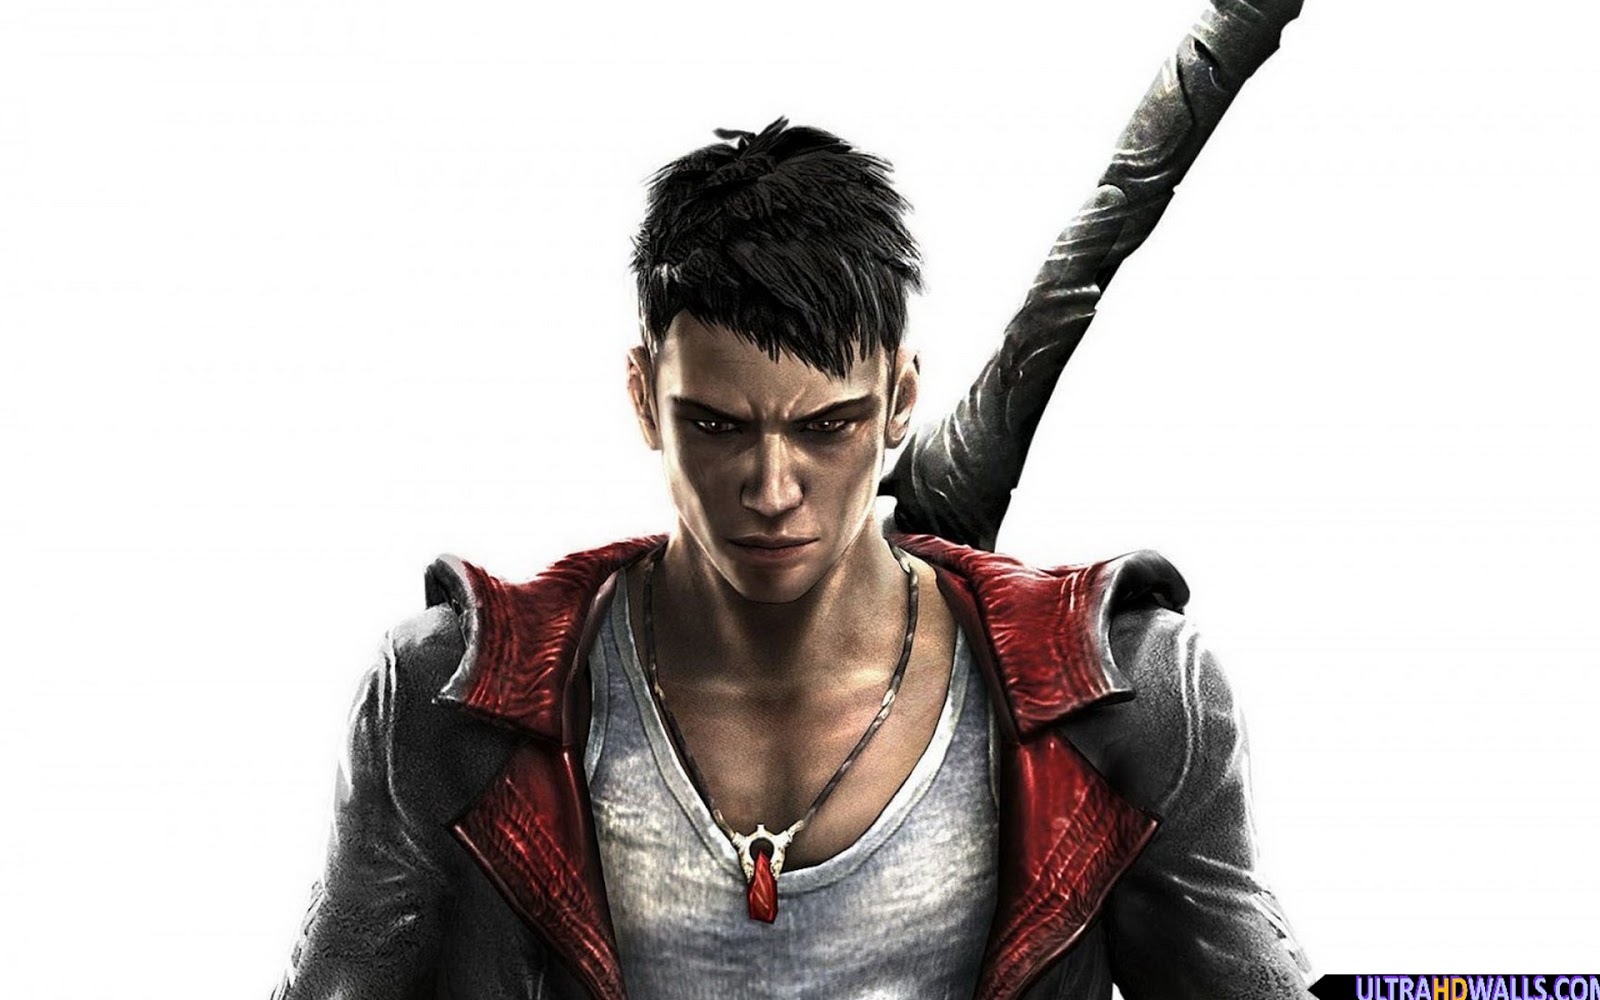 Devil may cry game hd wallpapers collection set 2 games wallpapers - Devil may cry hd pics ...